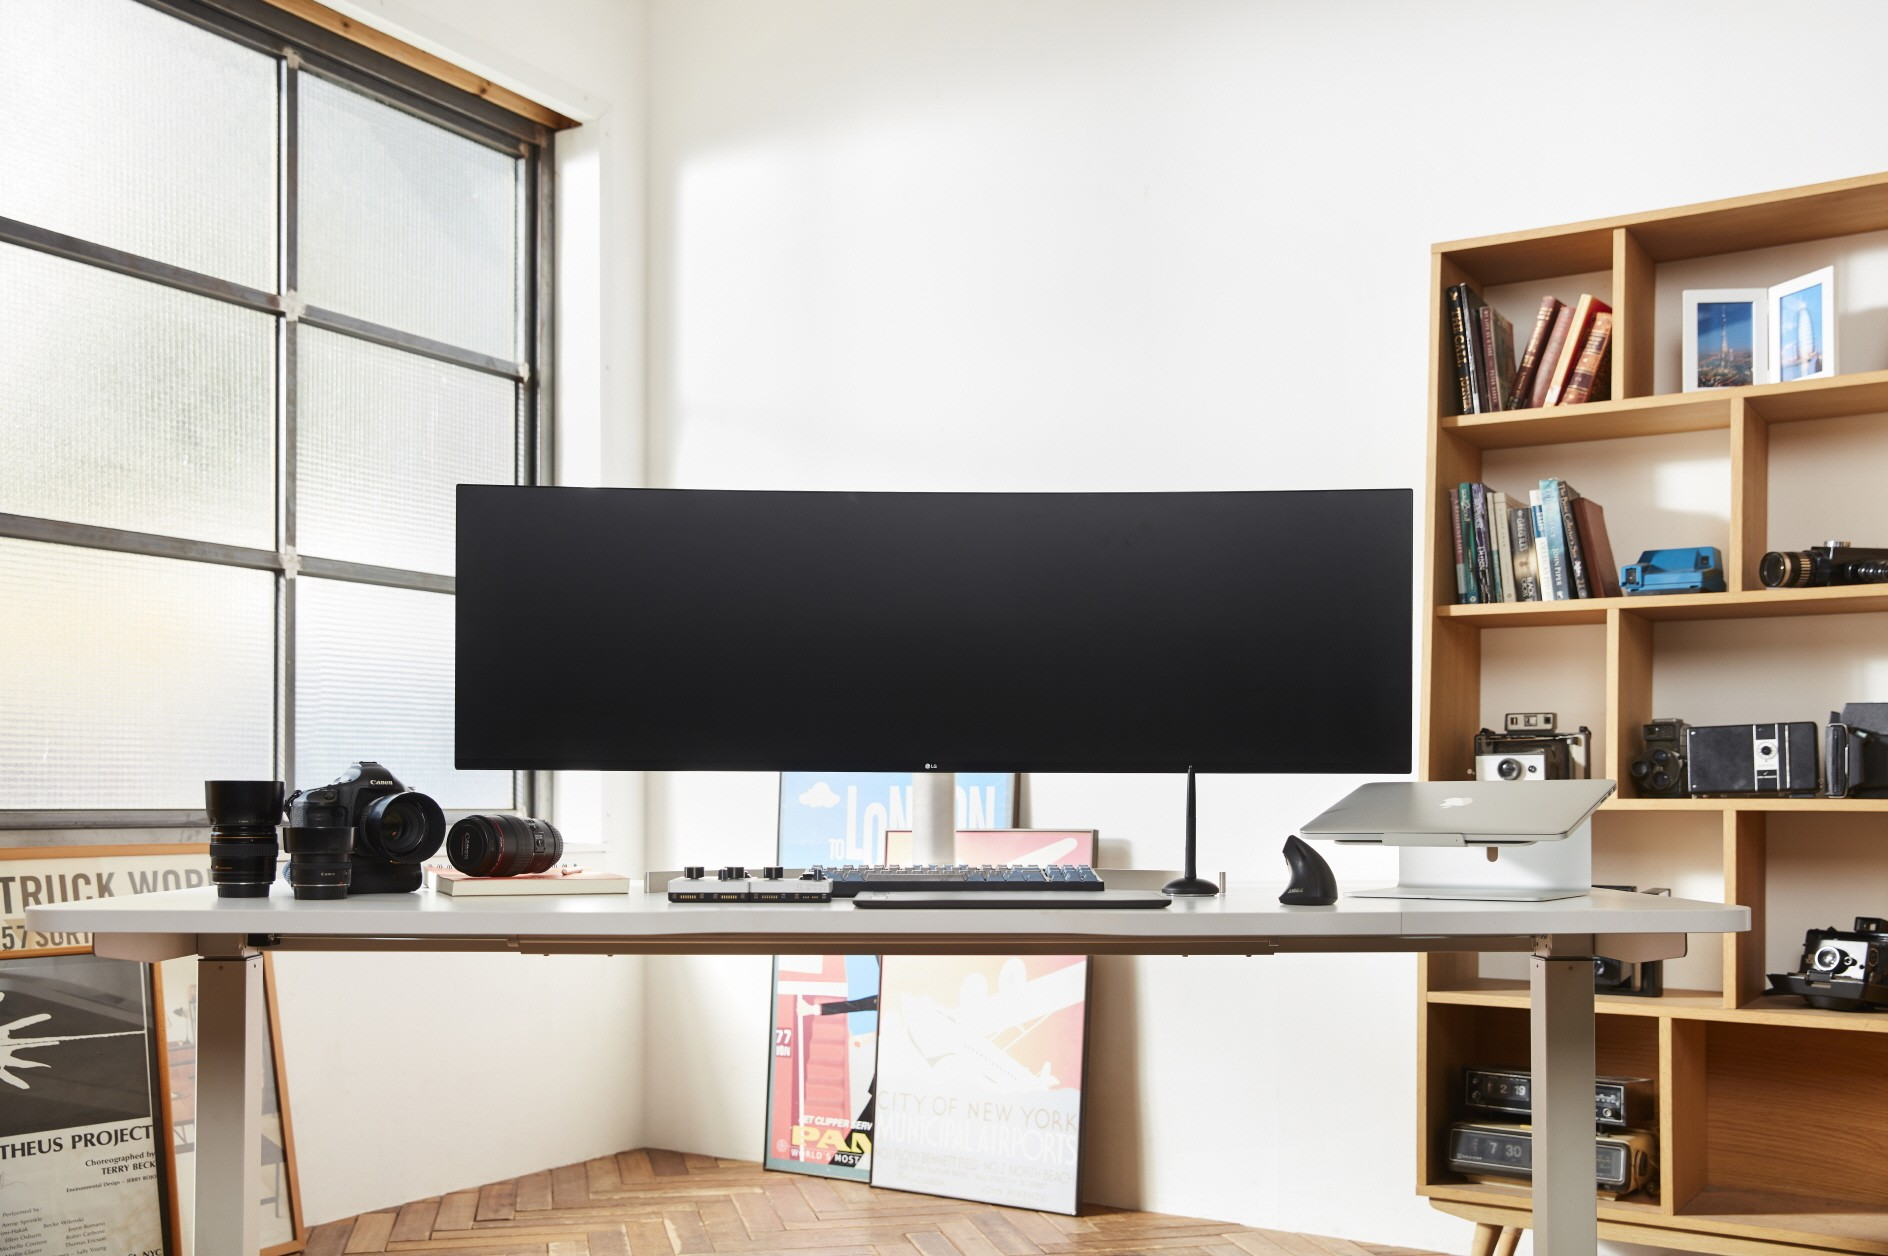 A front view of LG UltraWide monitor model 49WL95 sitting on a desk in someone's home office